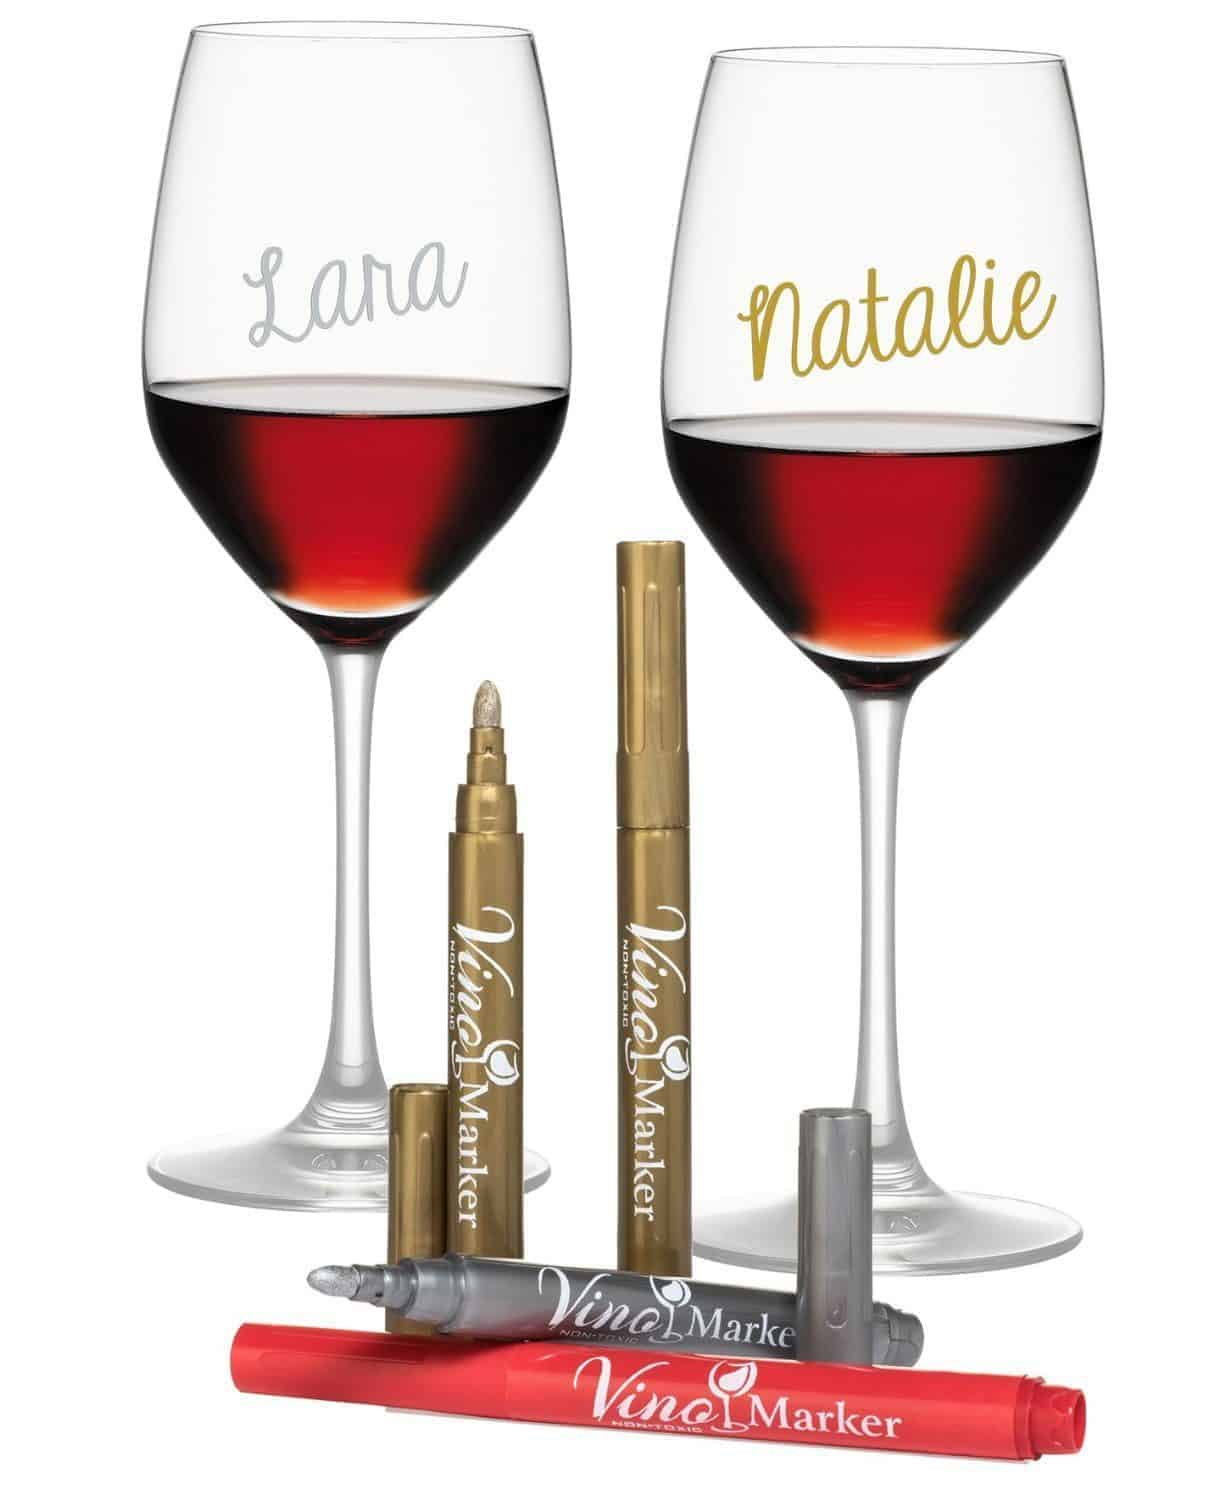 Veno marker metallic wine glasses